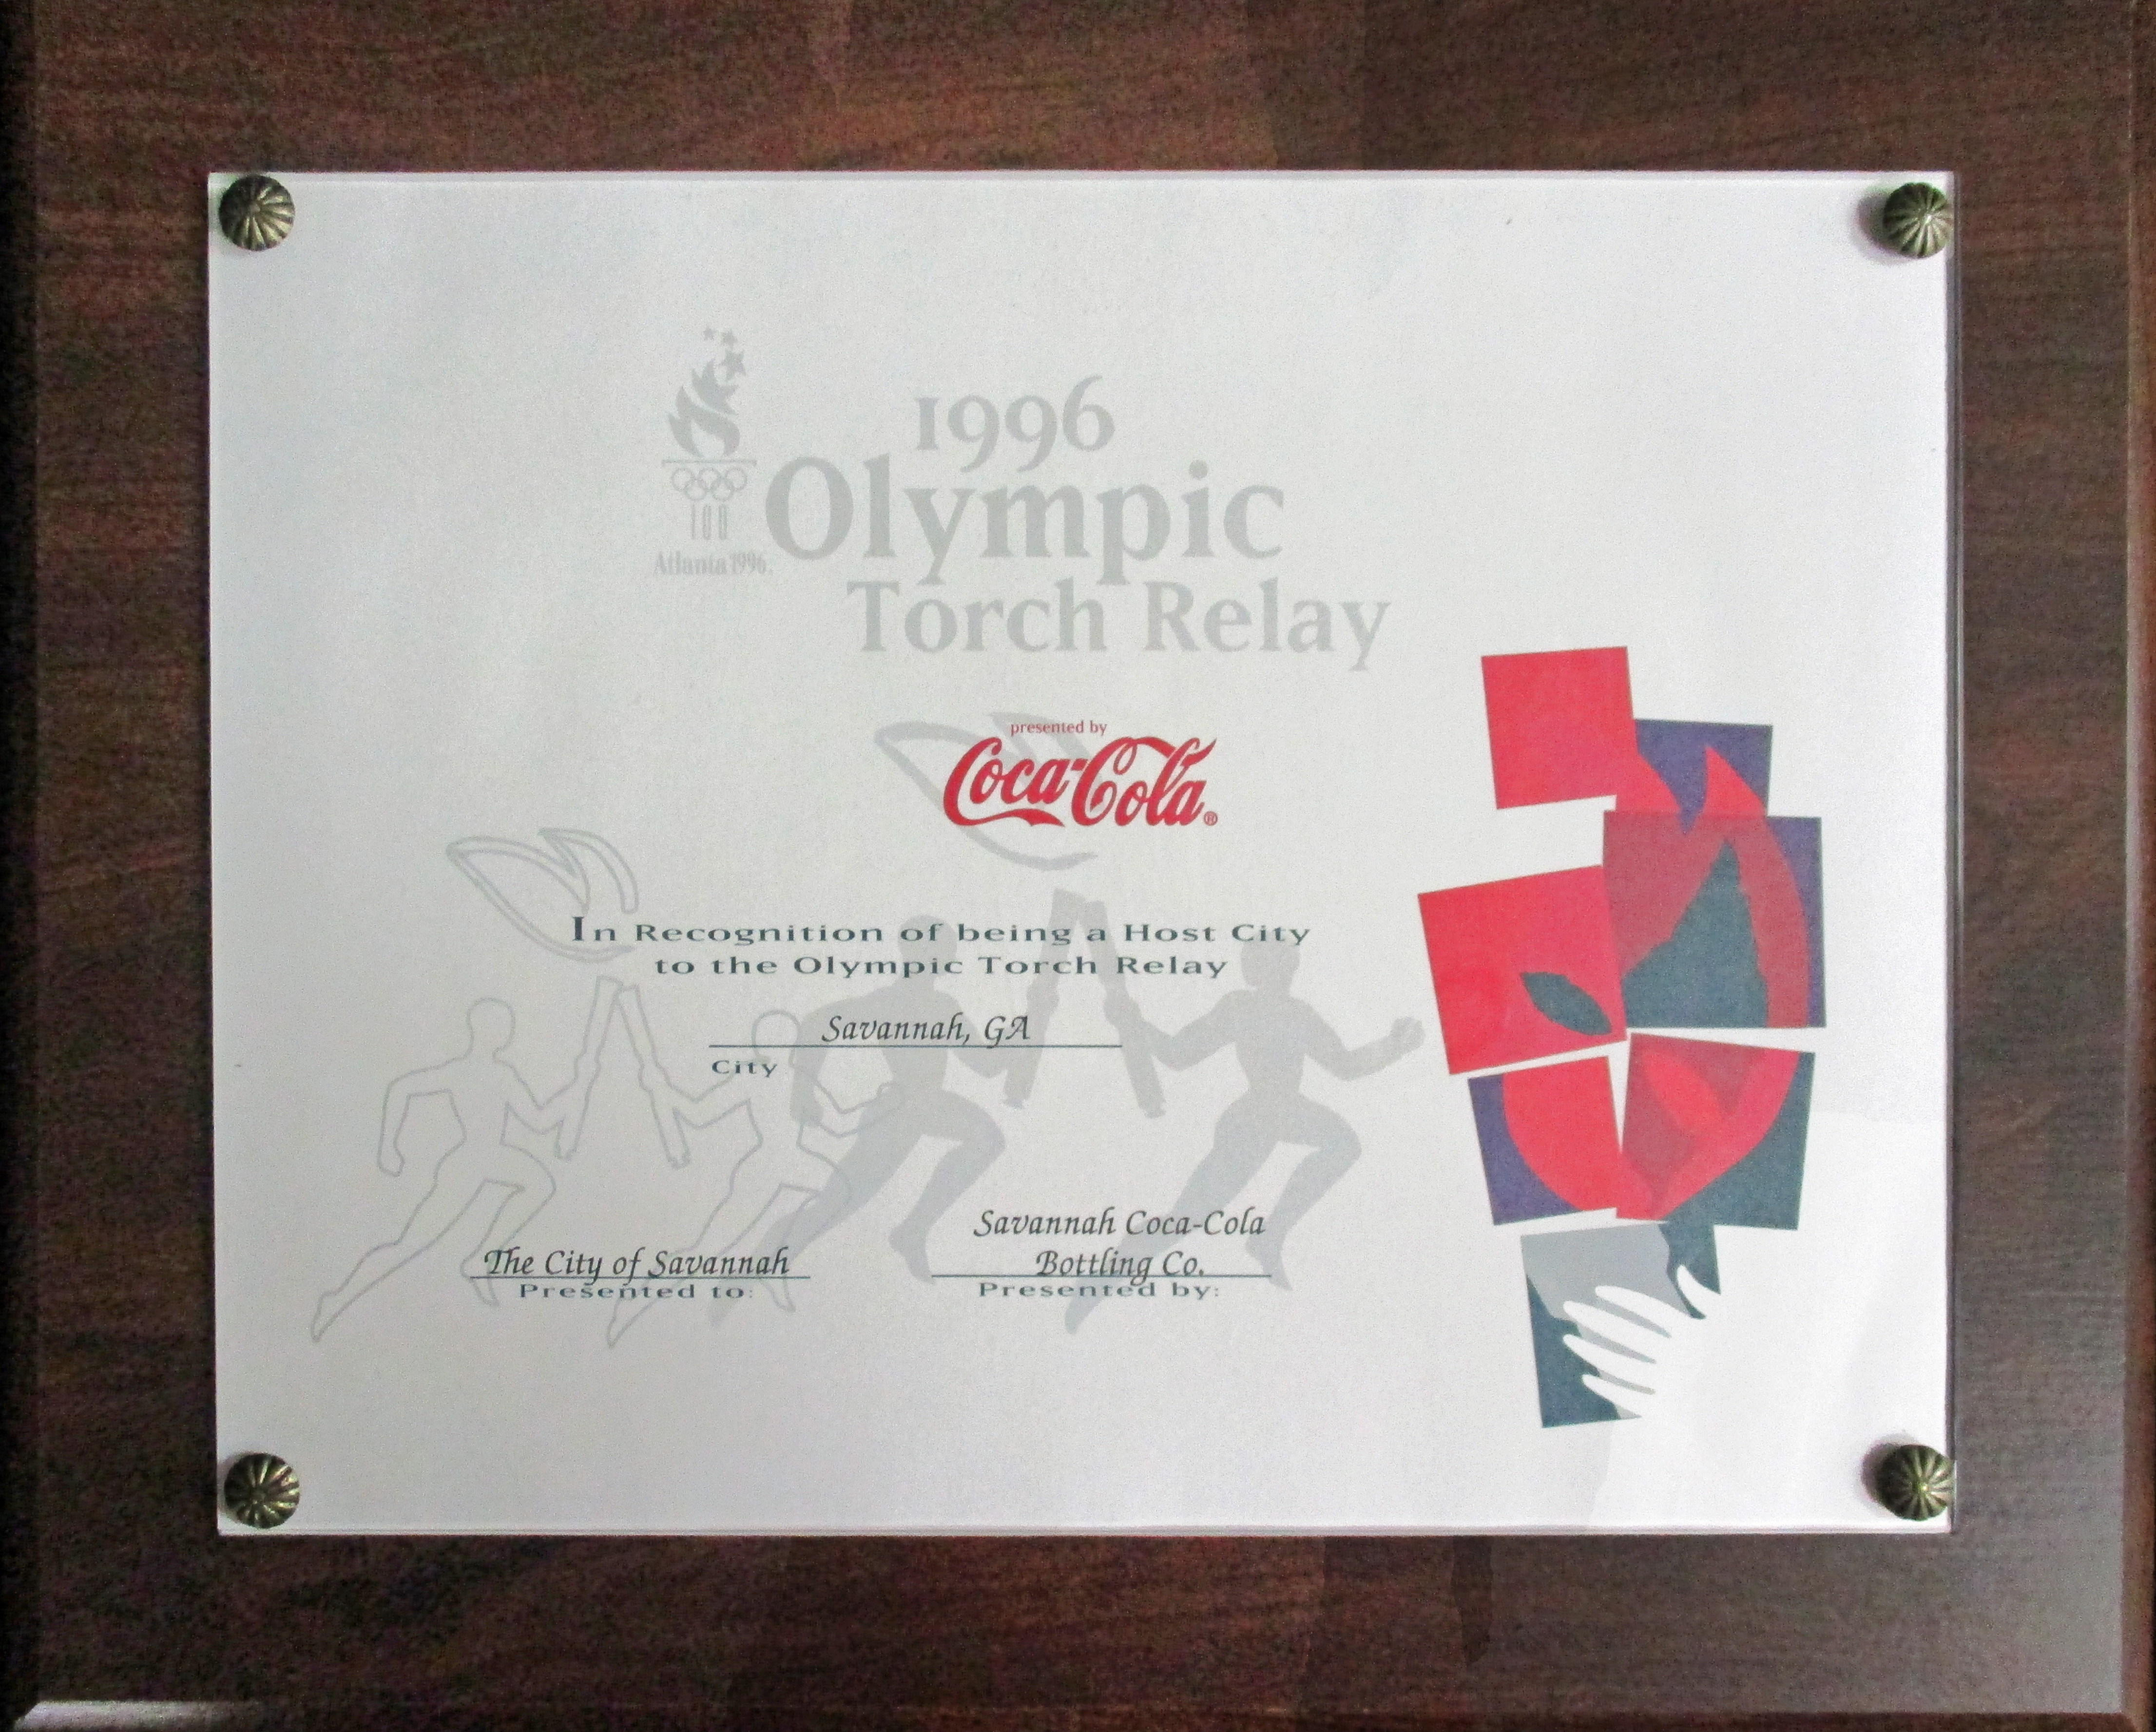 Torch relay plaque